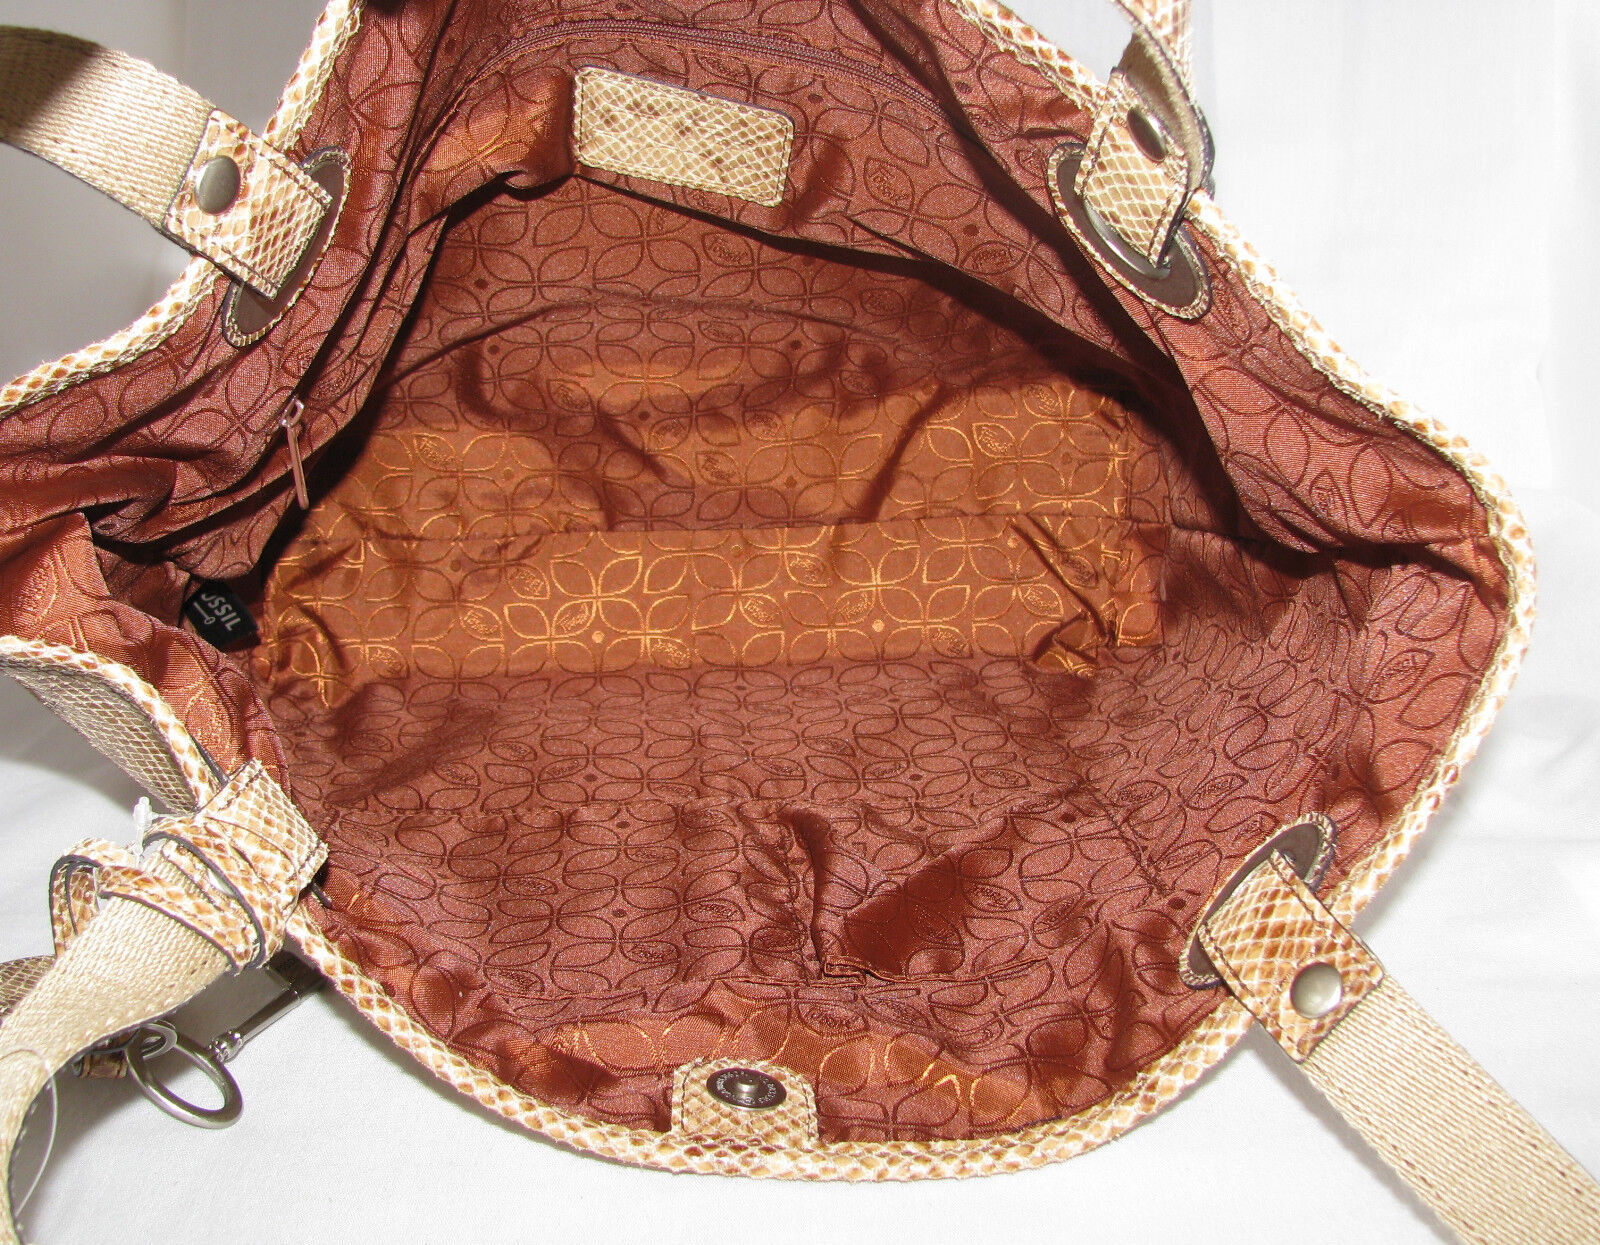 13dbcfa2b9 Fossil Python Tote Bag SHOPPER Purse in Taupe Embossed Leather Shb3605271  for sale online